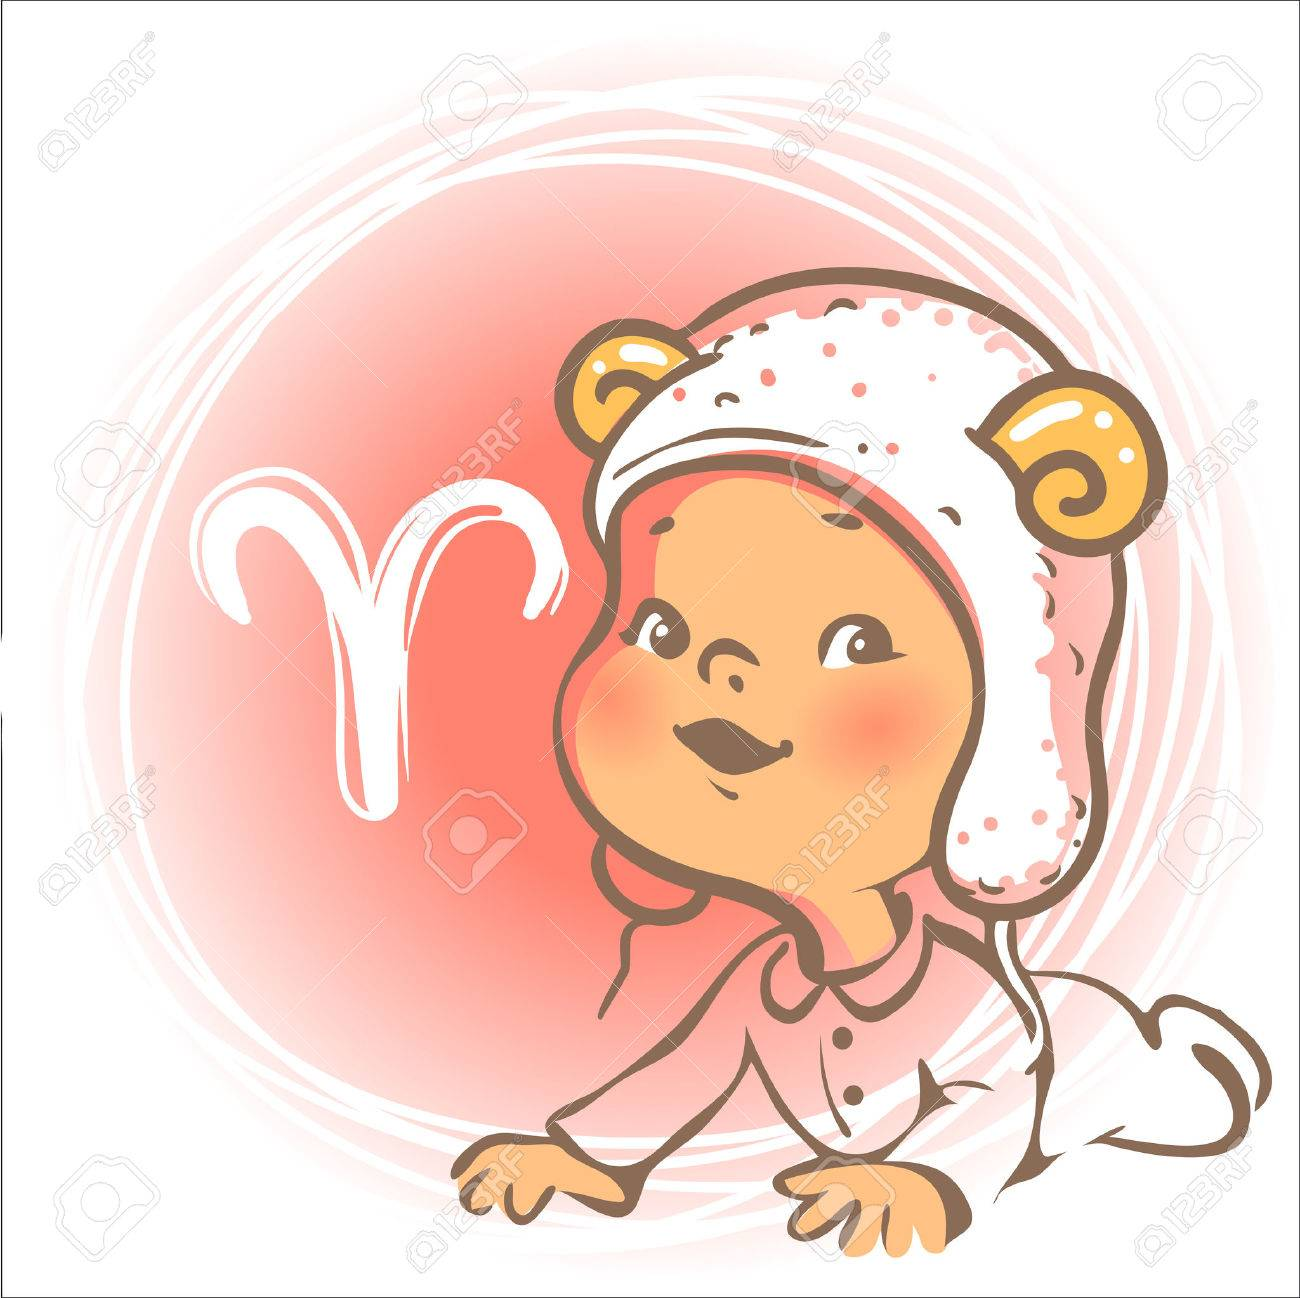 Children horoscope icon. Kids zodiac. Cute little baby boy or girl as Aries astrological sign. Funny animal hat with horns. Colorful illustration. Astrological symbol as cartoon character. - 46608467